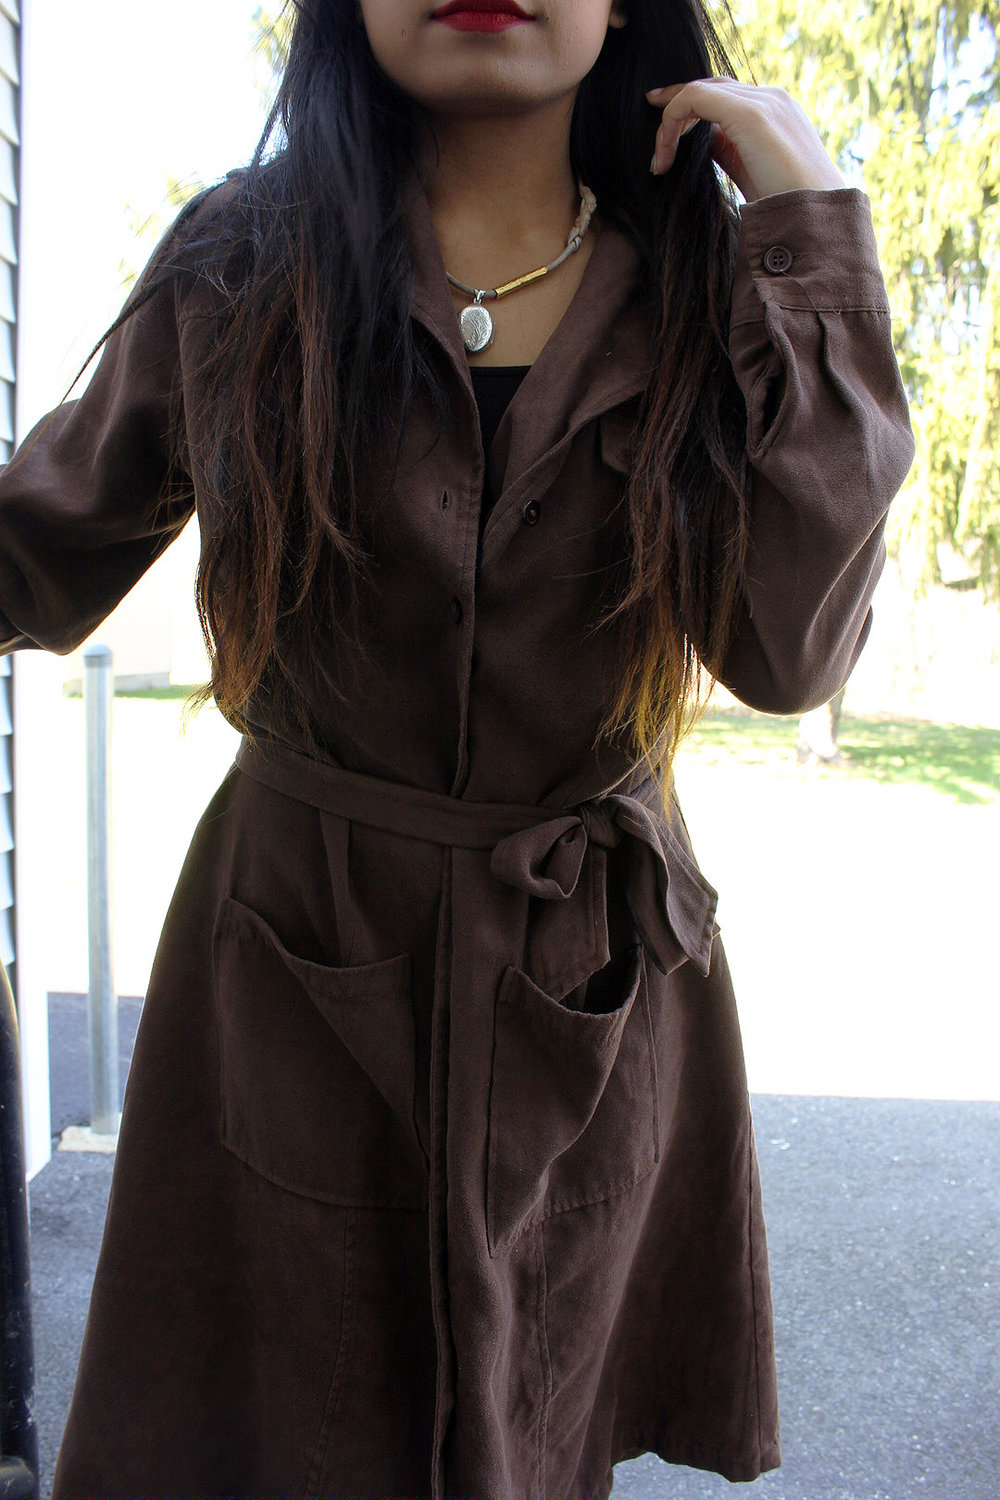 Trench-Coat-Dresses-Work-Appropriate-Office-Wear-Blogger-Style-LINDA-TENCHITRAN-7-1616x1080.jpg